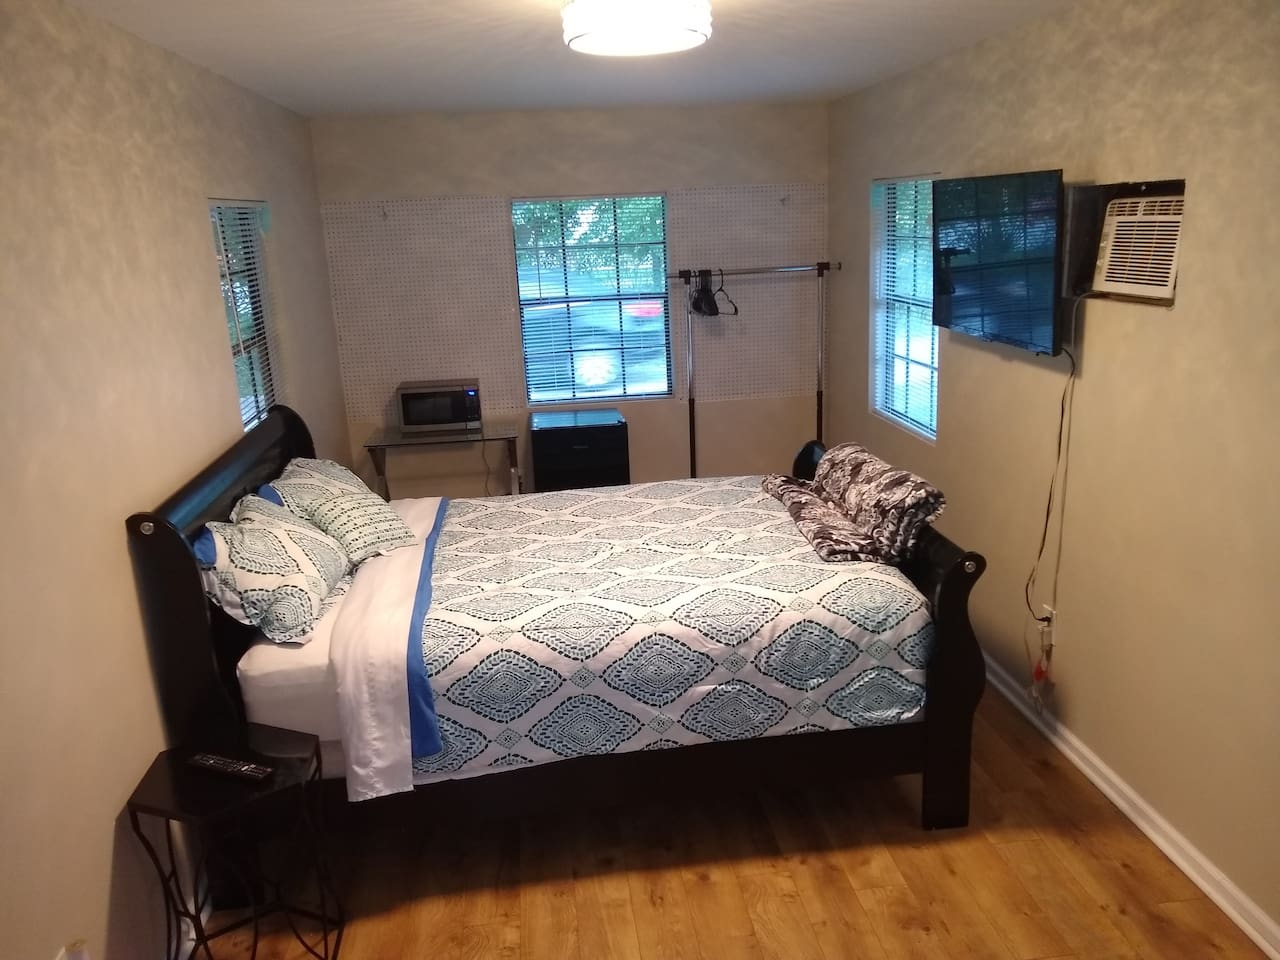 Room is spacious and well lit. However, all windows have blinds so those who don't enjoy the sun or desire privacy can close them.